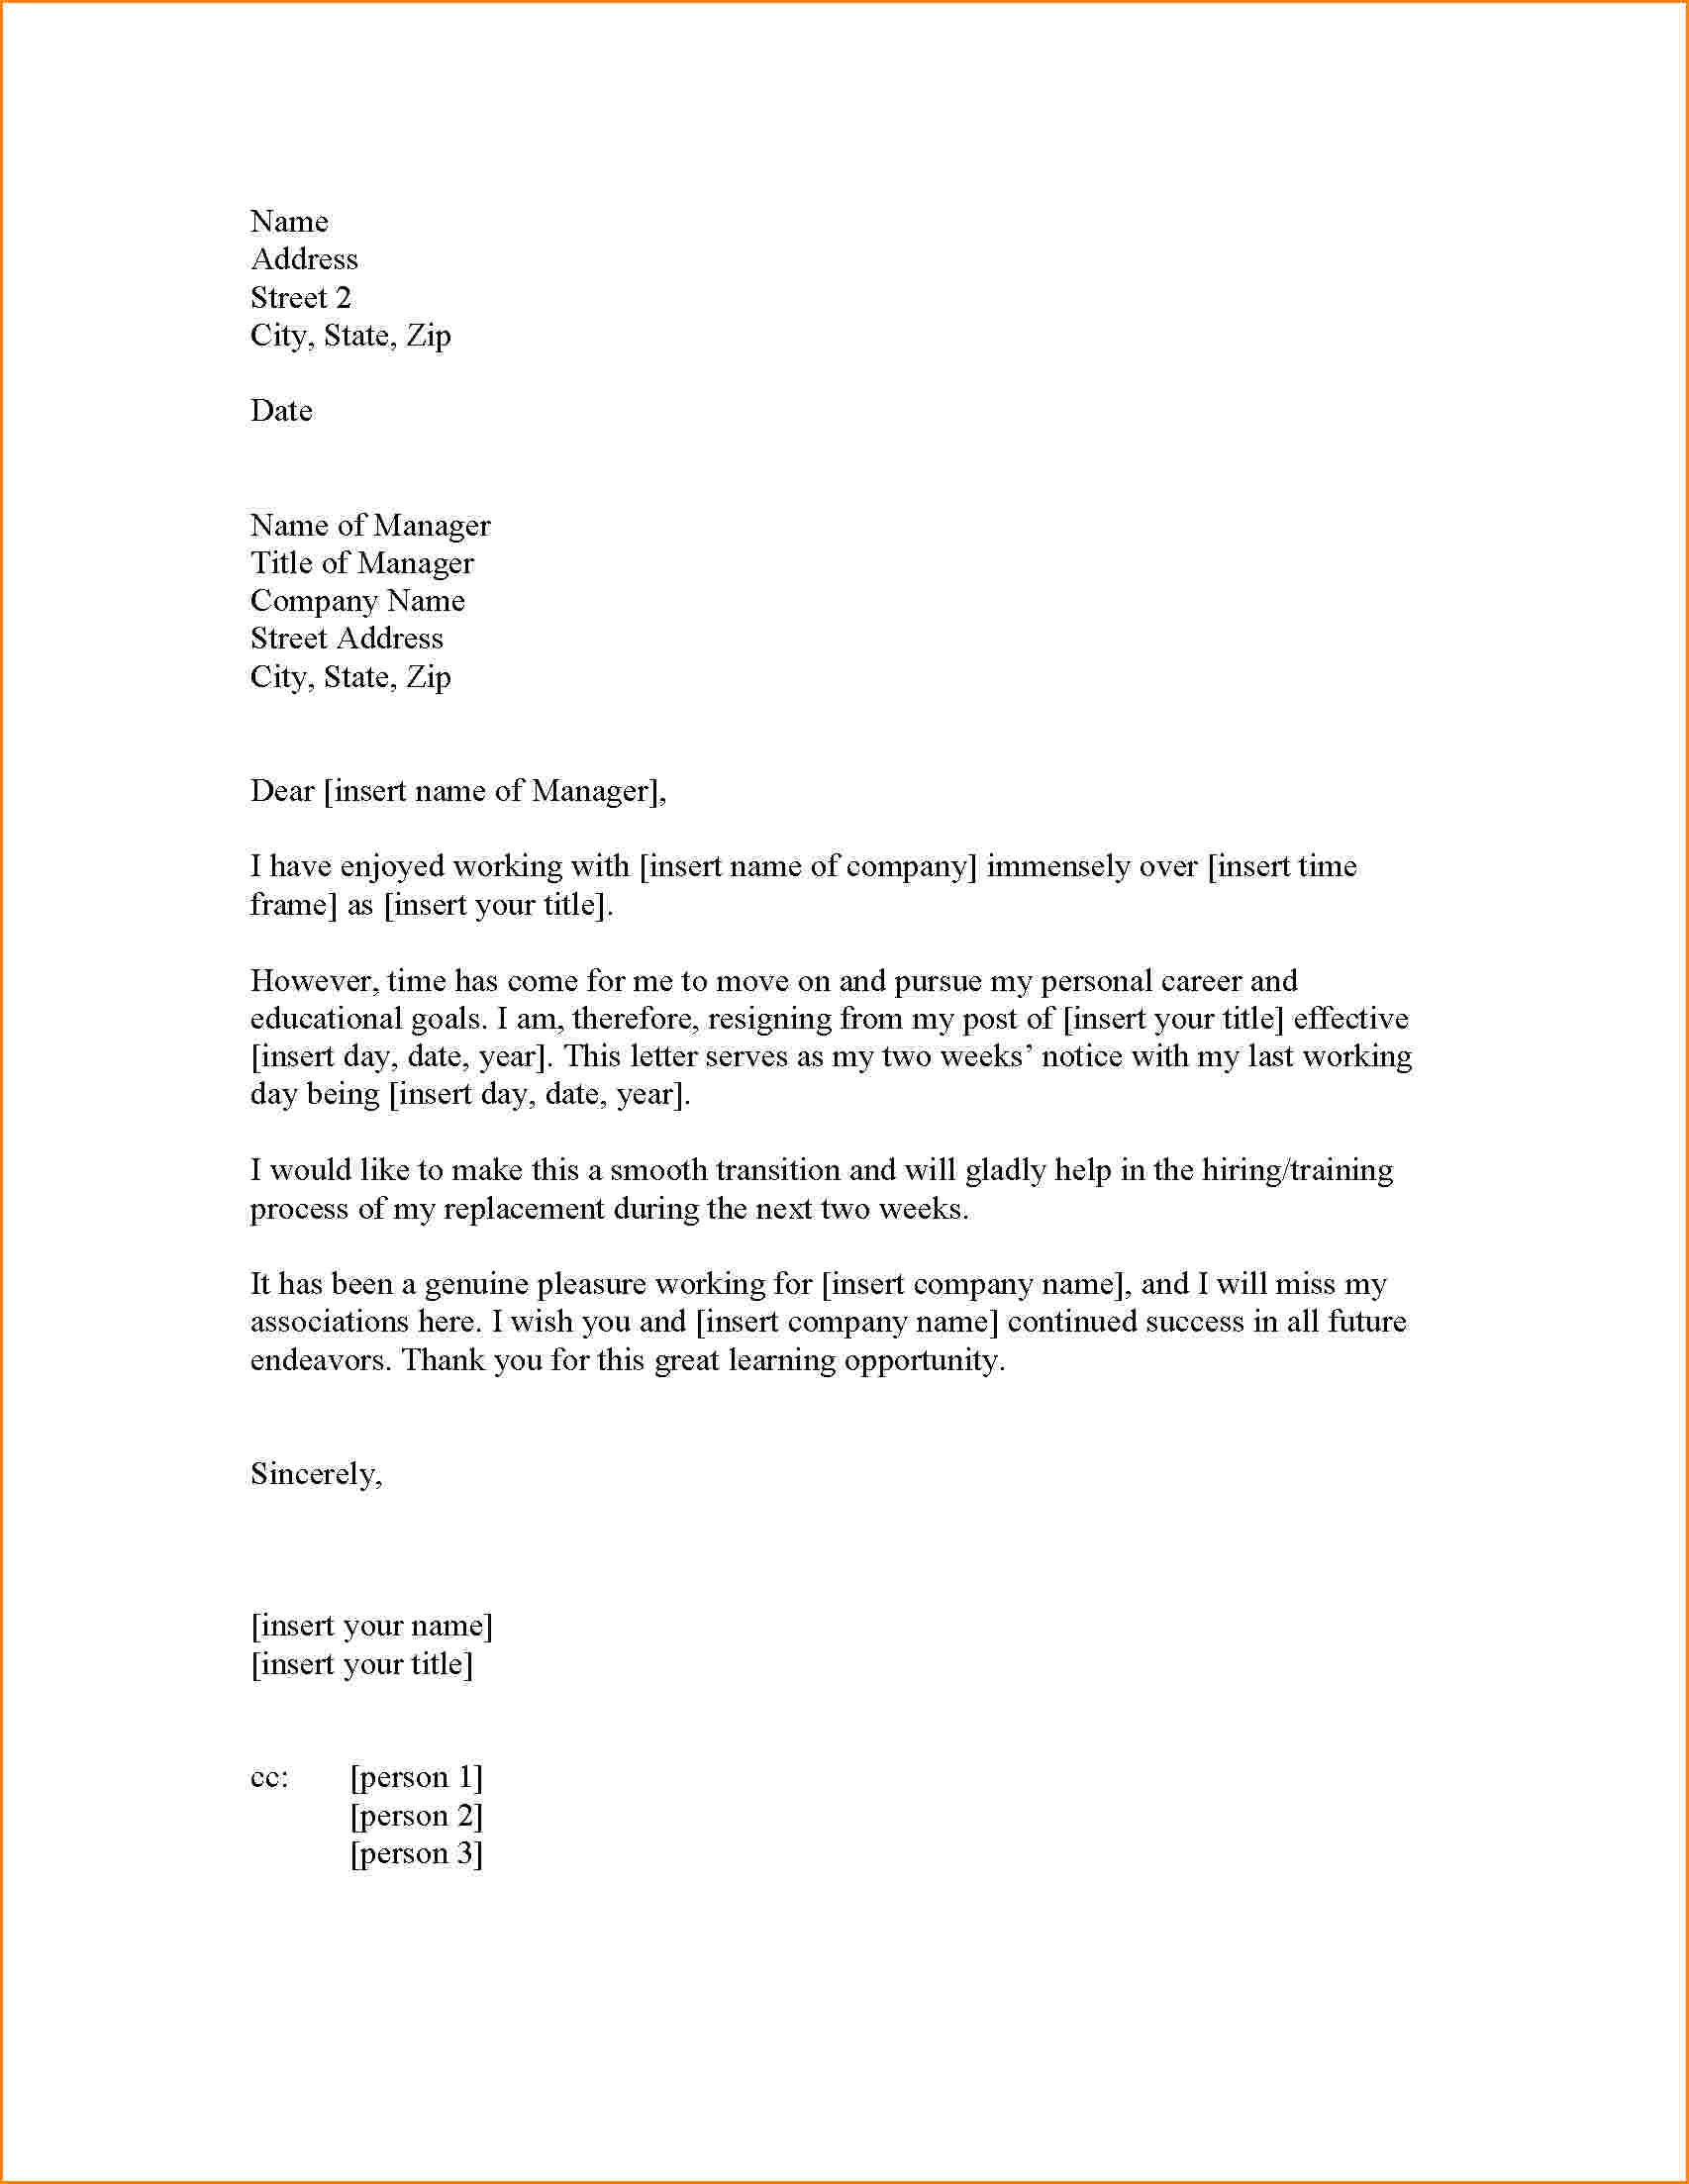 Good Resignation Letter Two Weeks Notice Images About Resignation  On Two Weeks Notice